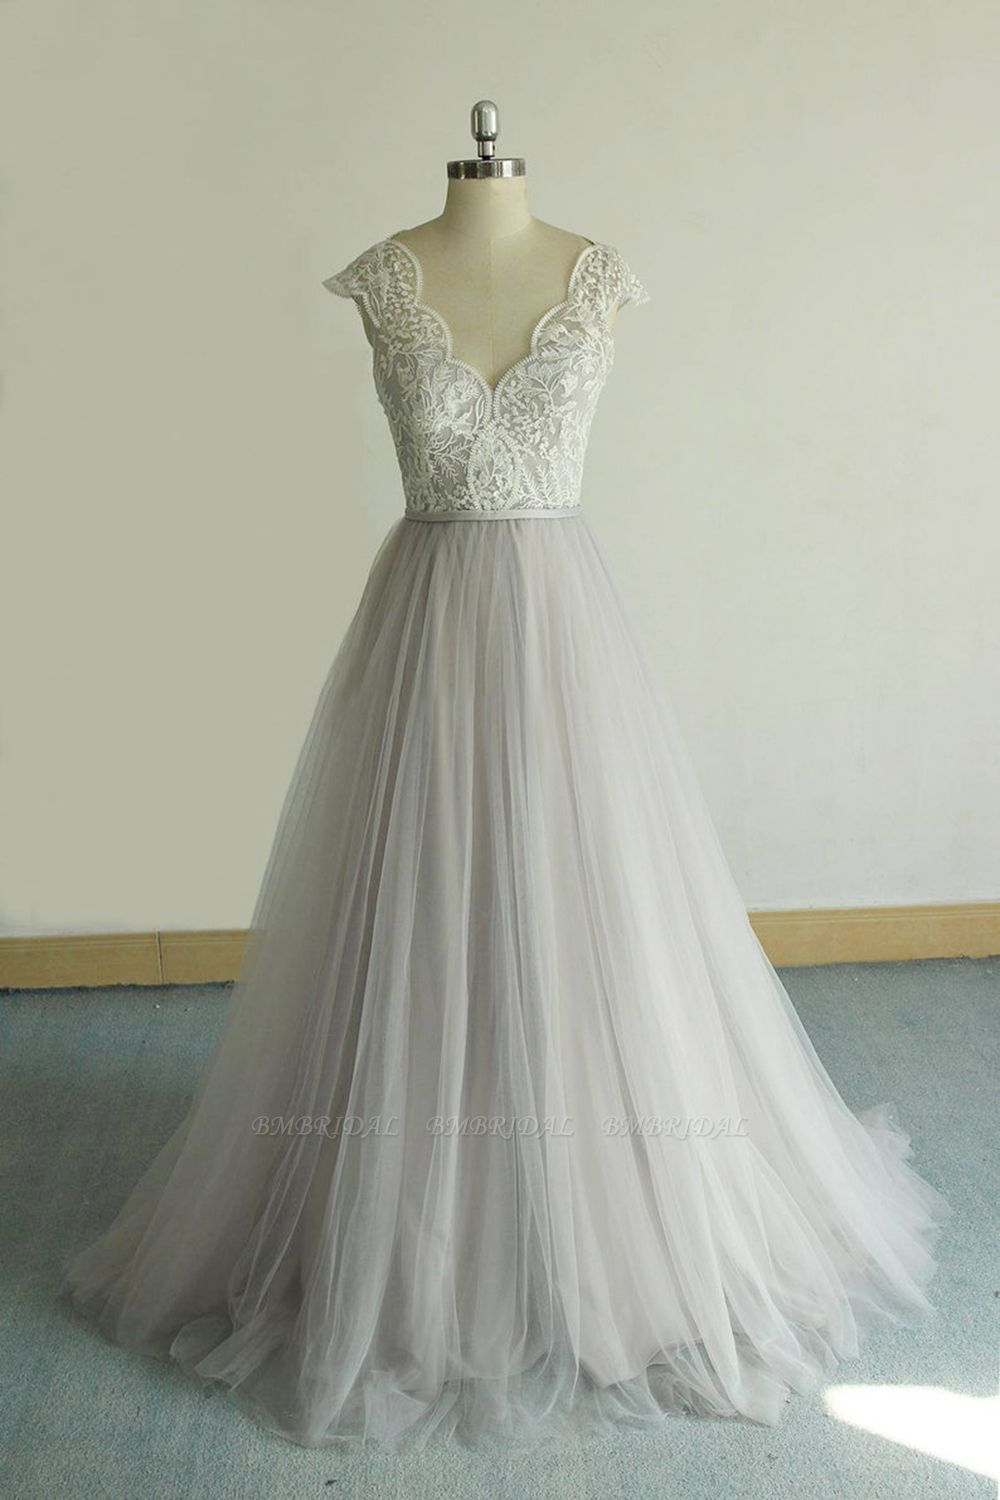 BMbridal Unique V-neck Appliques Tulle Wedding Dress Ruffles Shortsleeves A-line Bridal Gowns On Sale